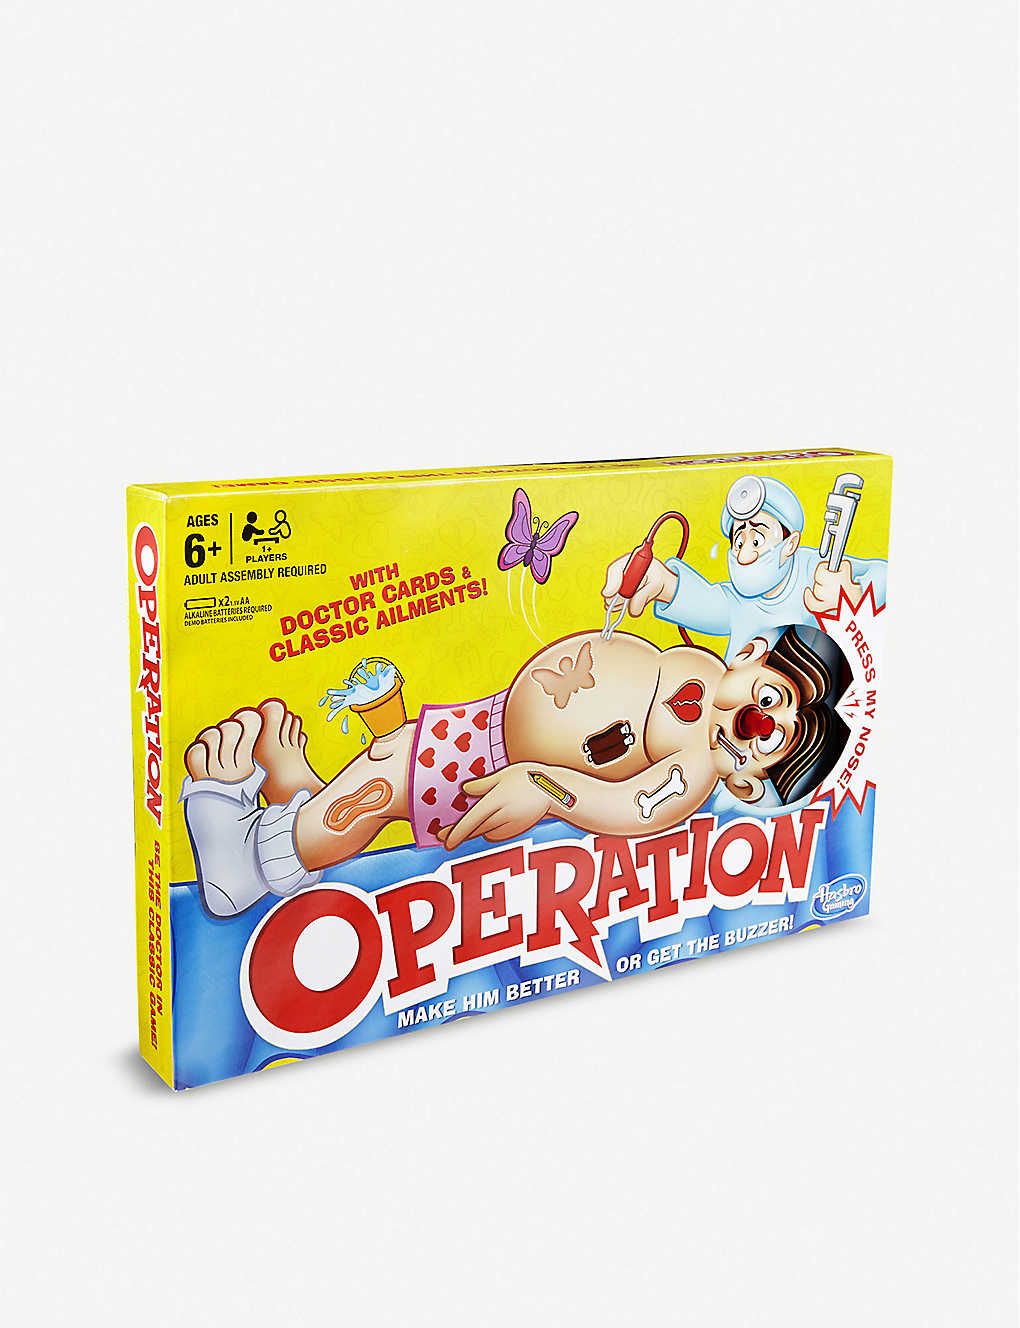 BOARD GAMES: Classic operation board game